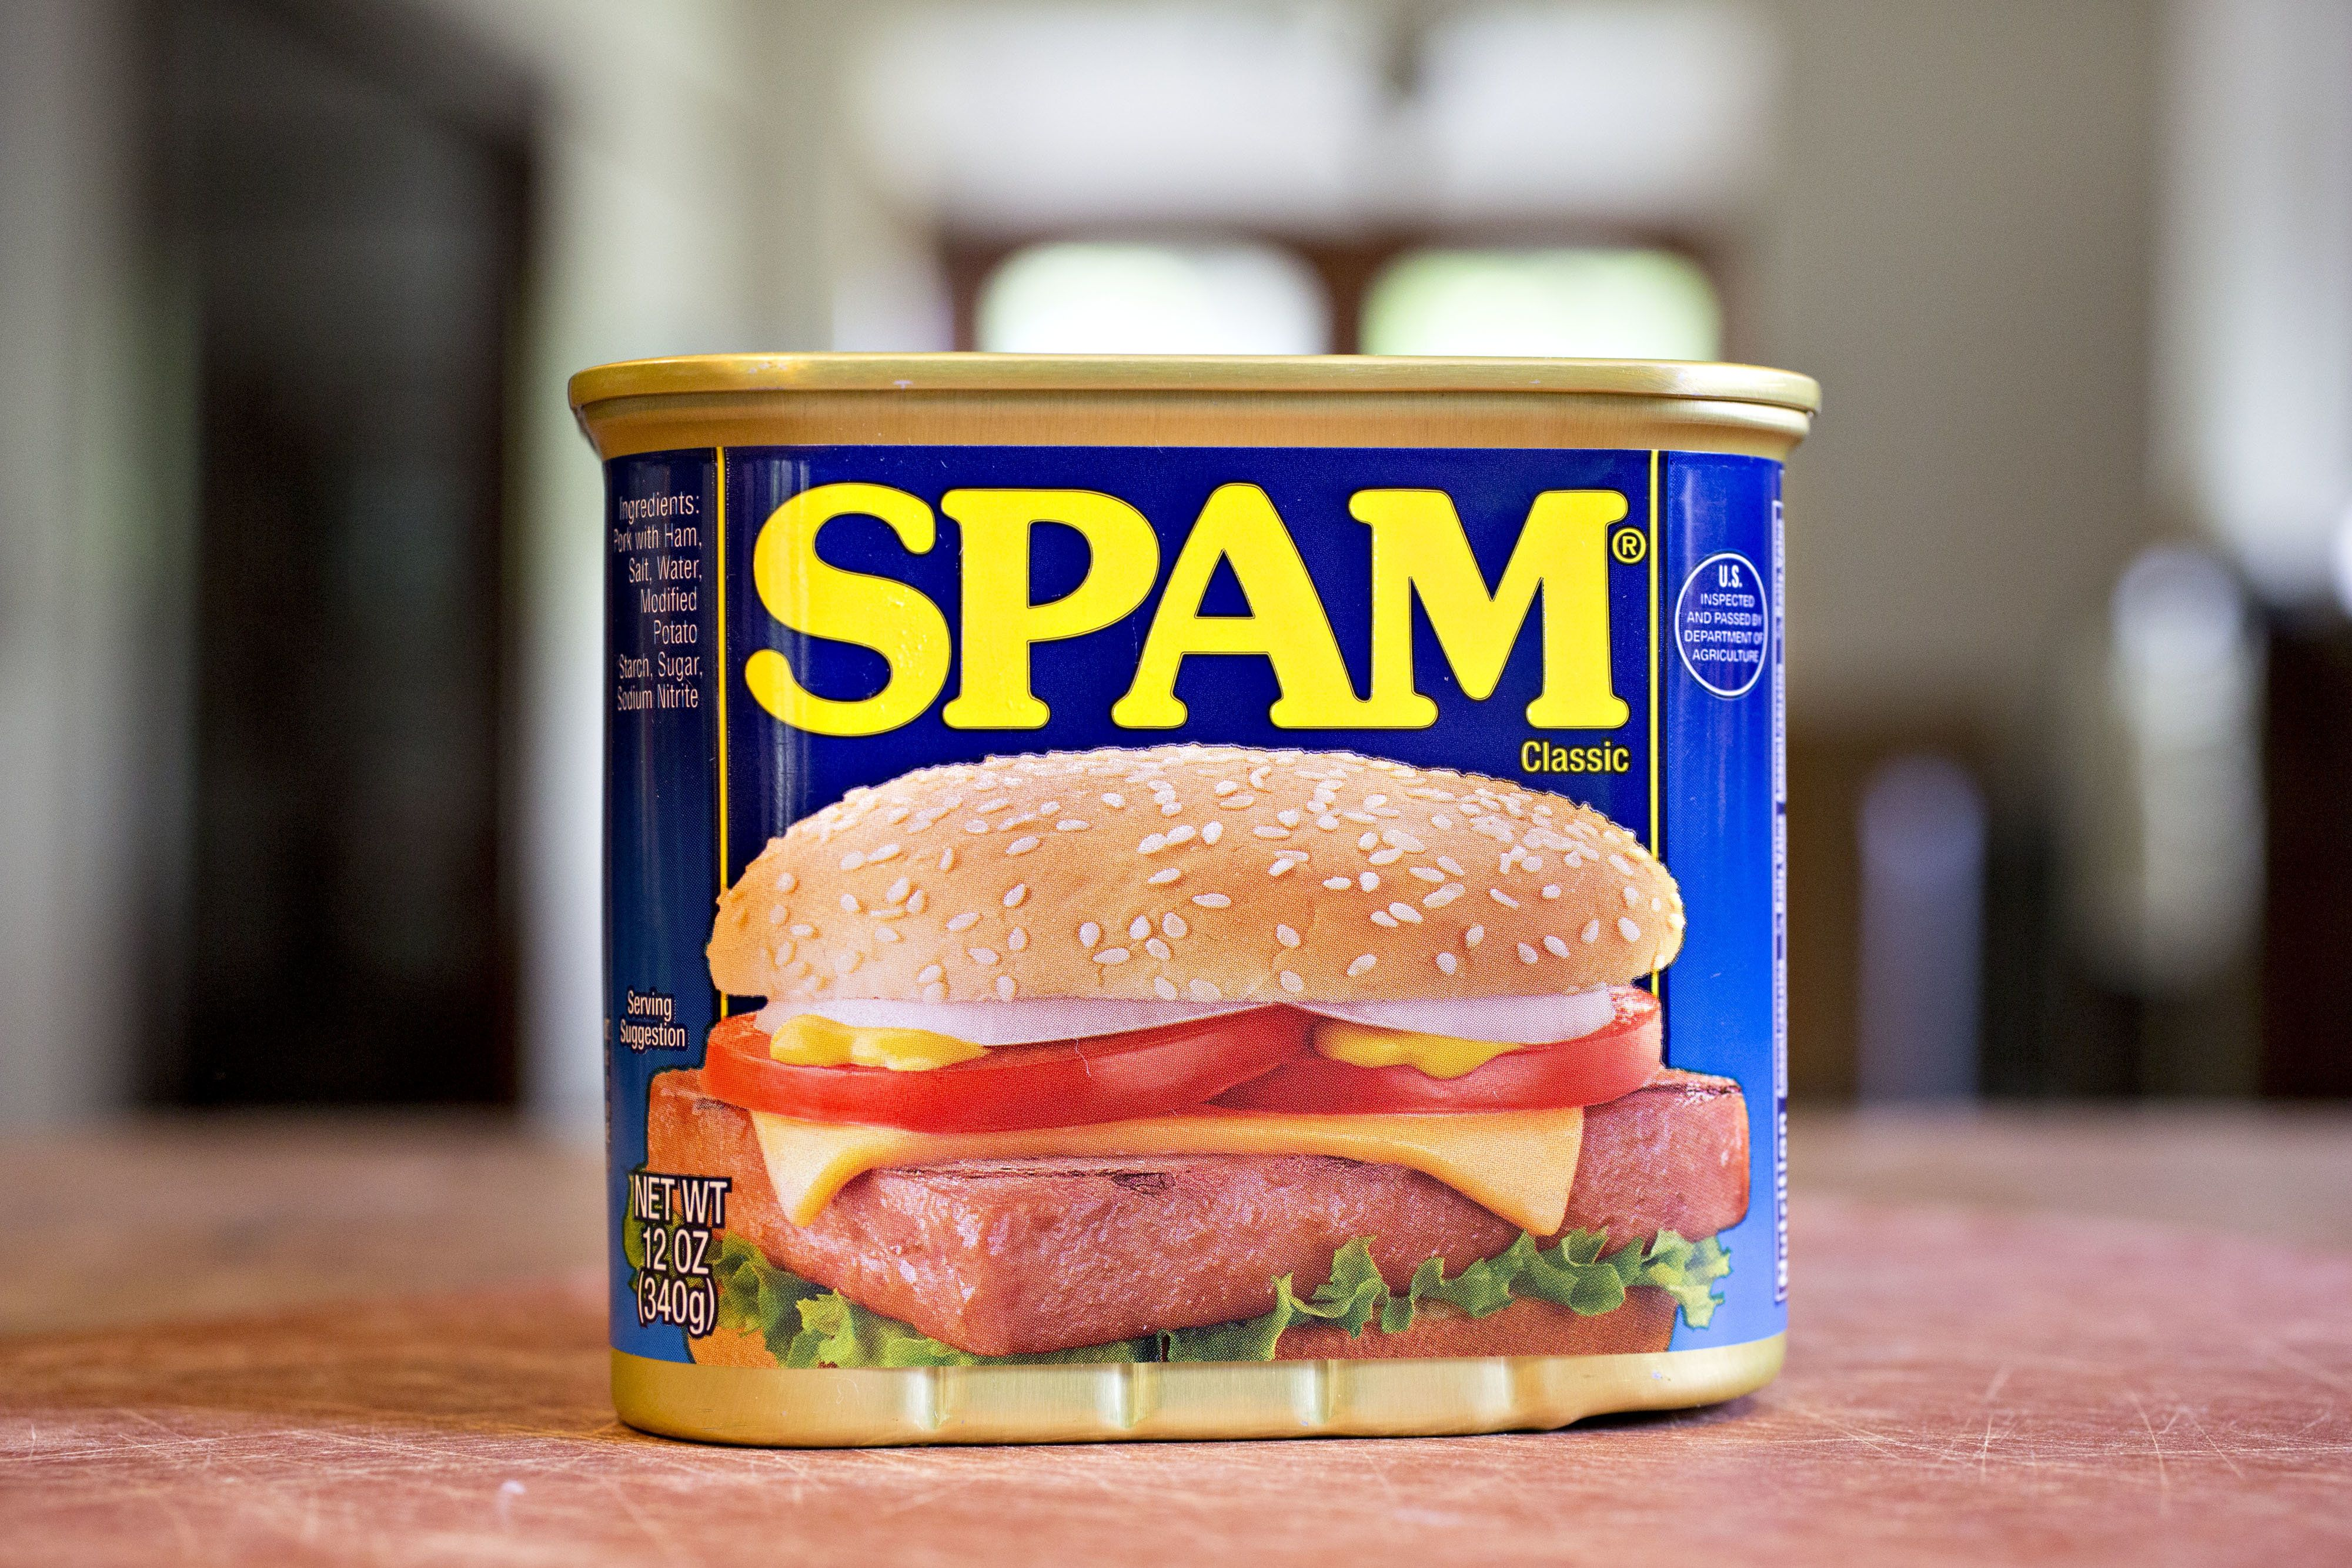 Horror as 228,000 pounds of SPAM is recalled